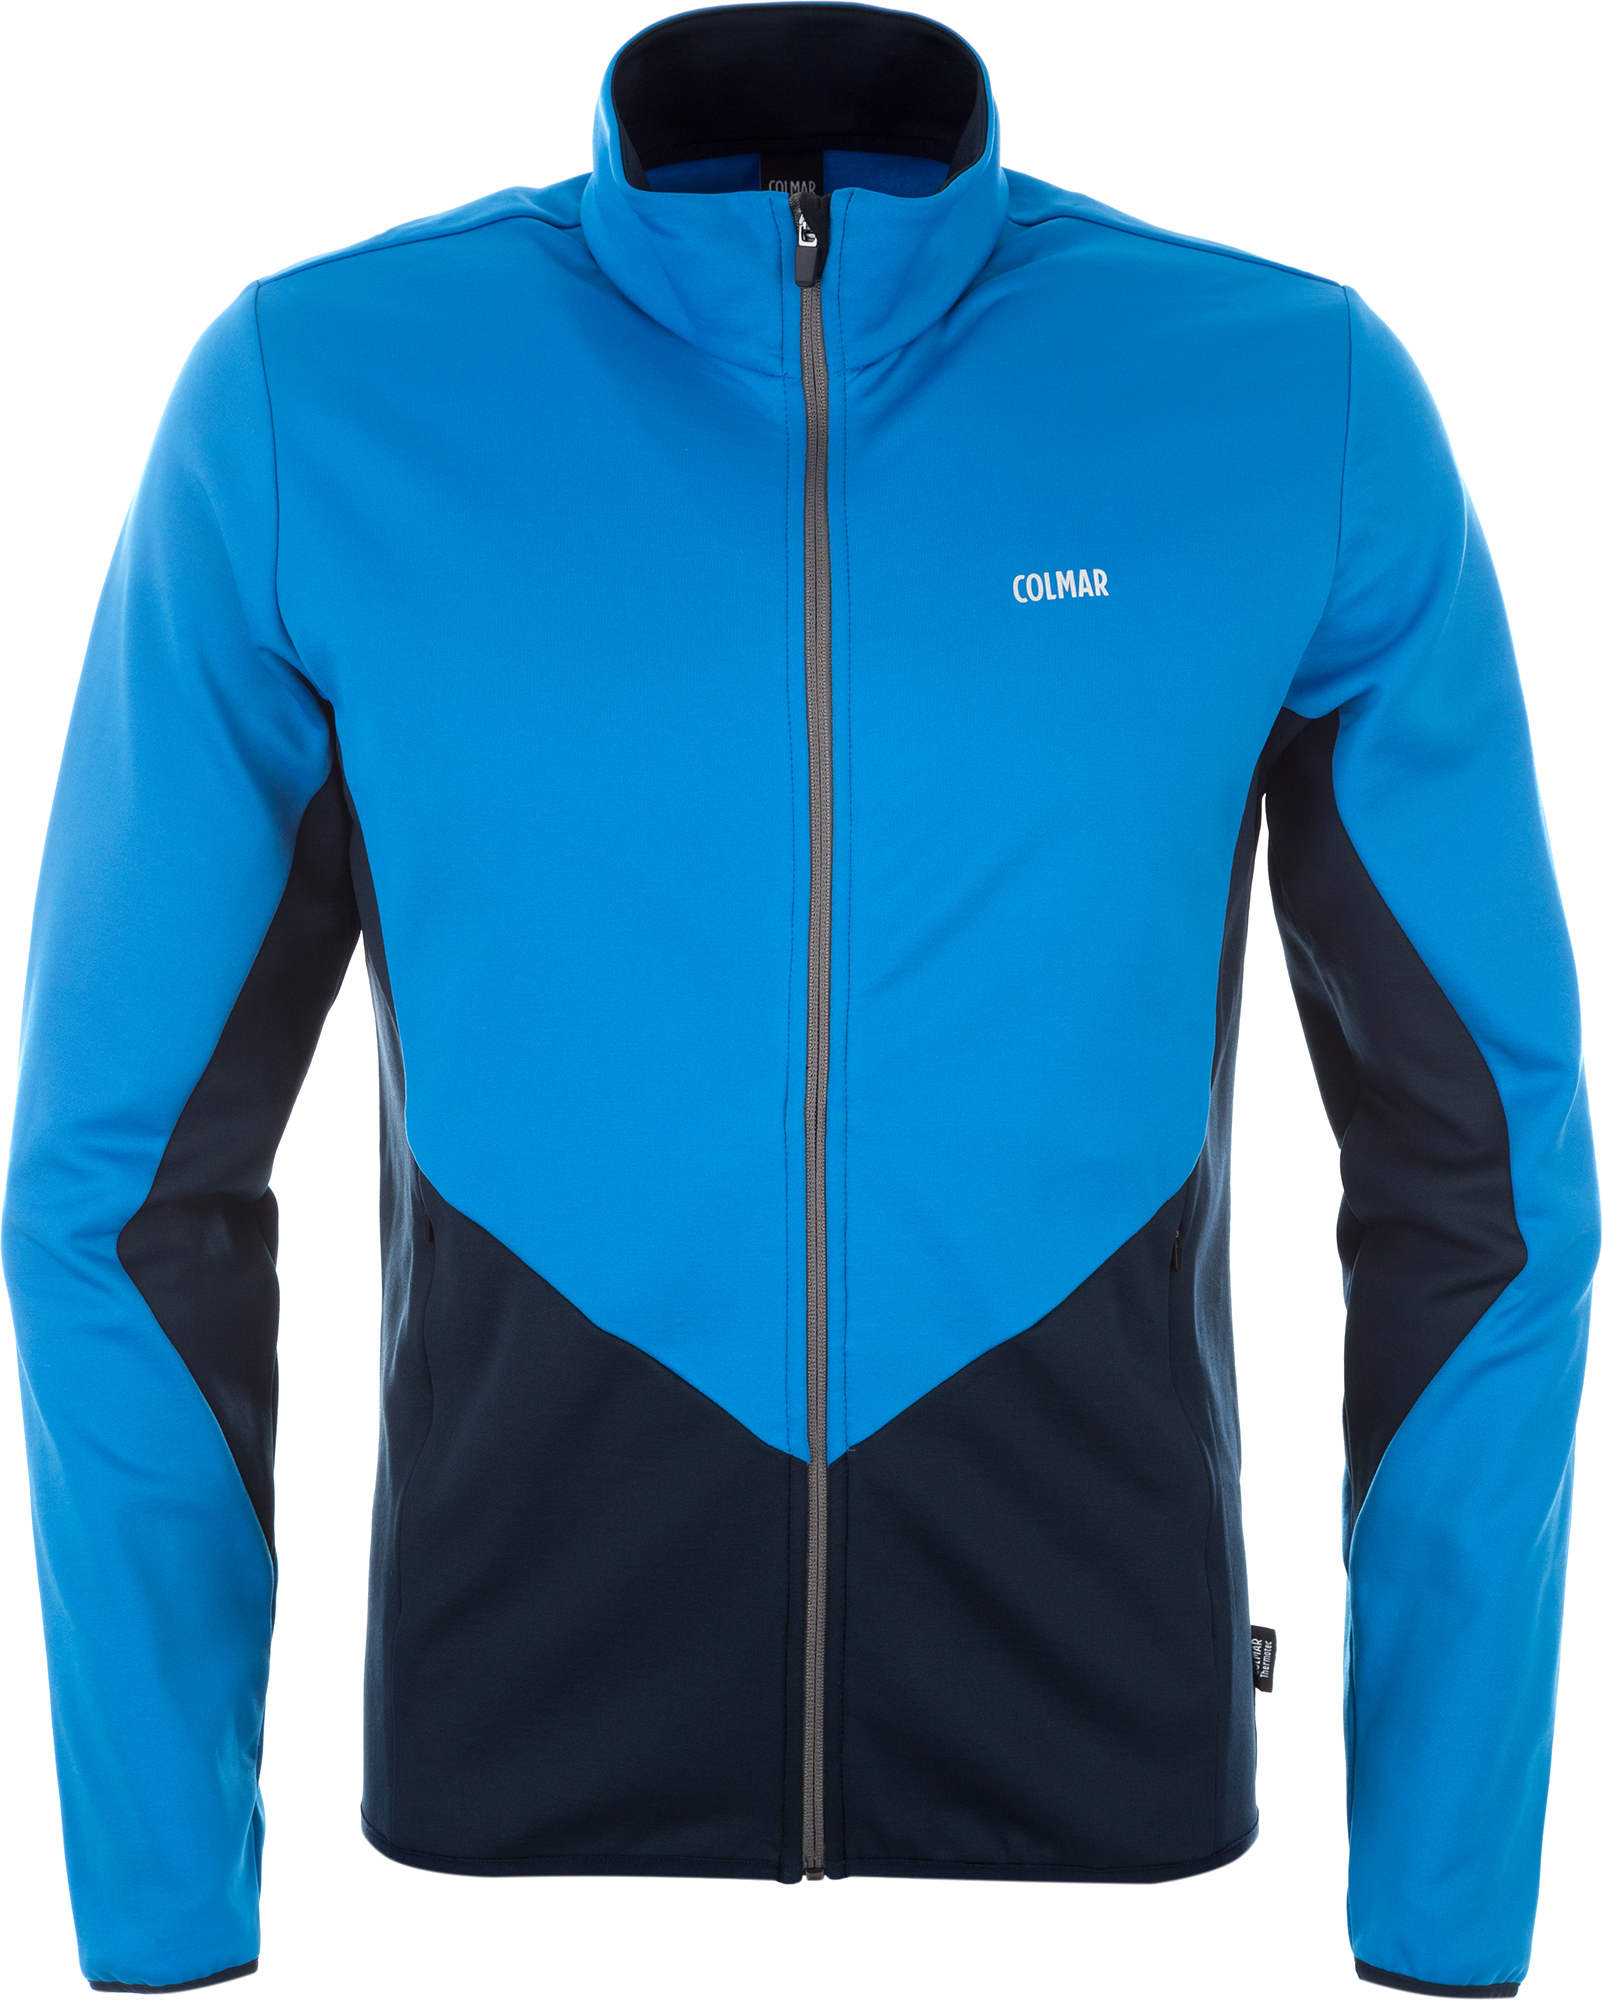 Colmar Джемпер мужской Colmar Stretch Fleece colmar легкое пальто